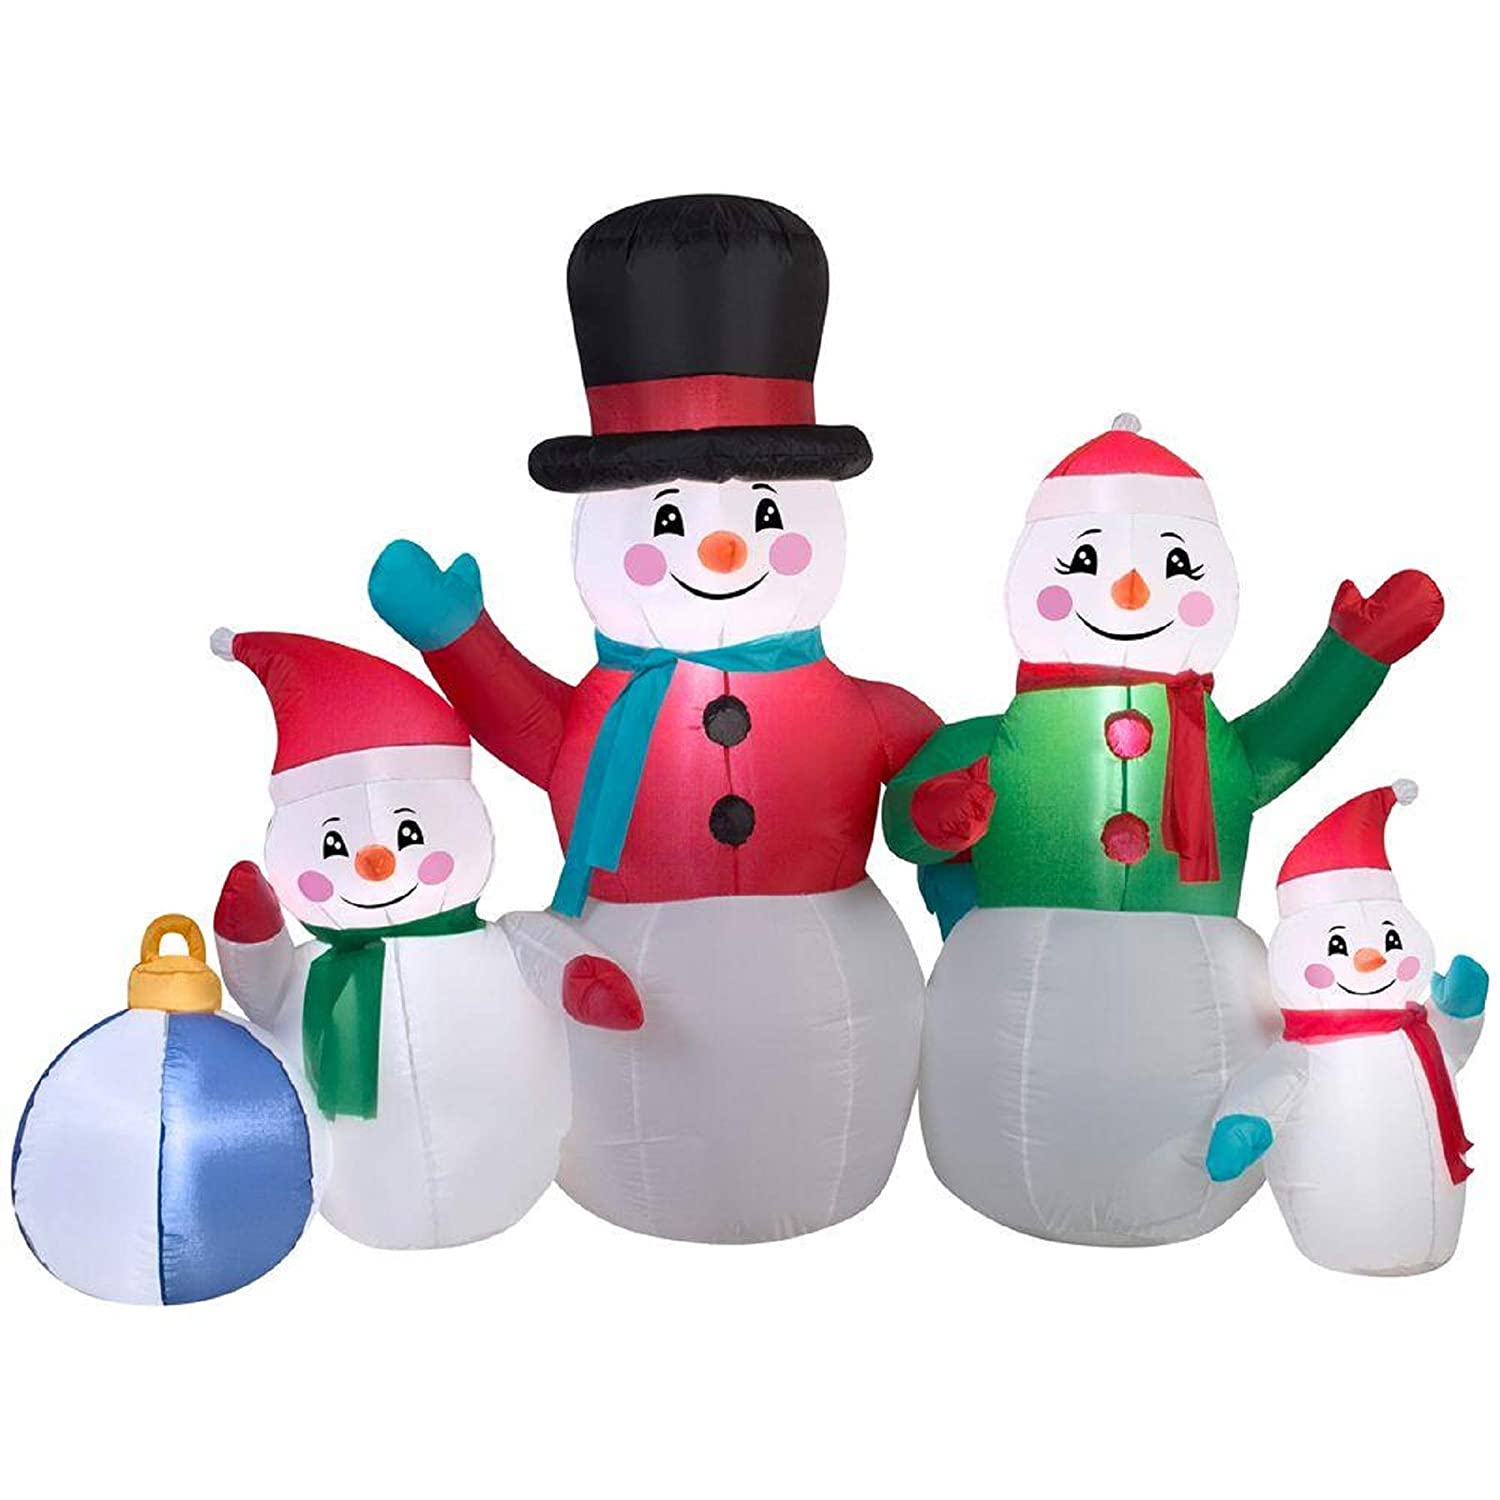 Christmas Inflatable.Christmas Inflatable 6 Snowman Family Airblown Decoration By Gemmy